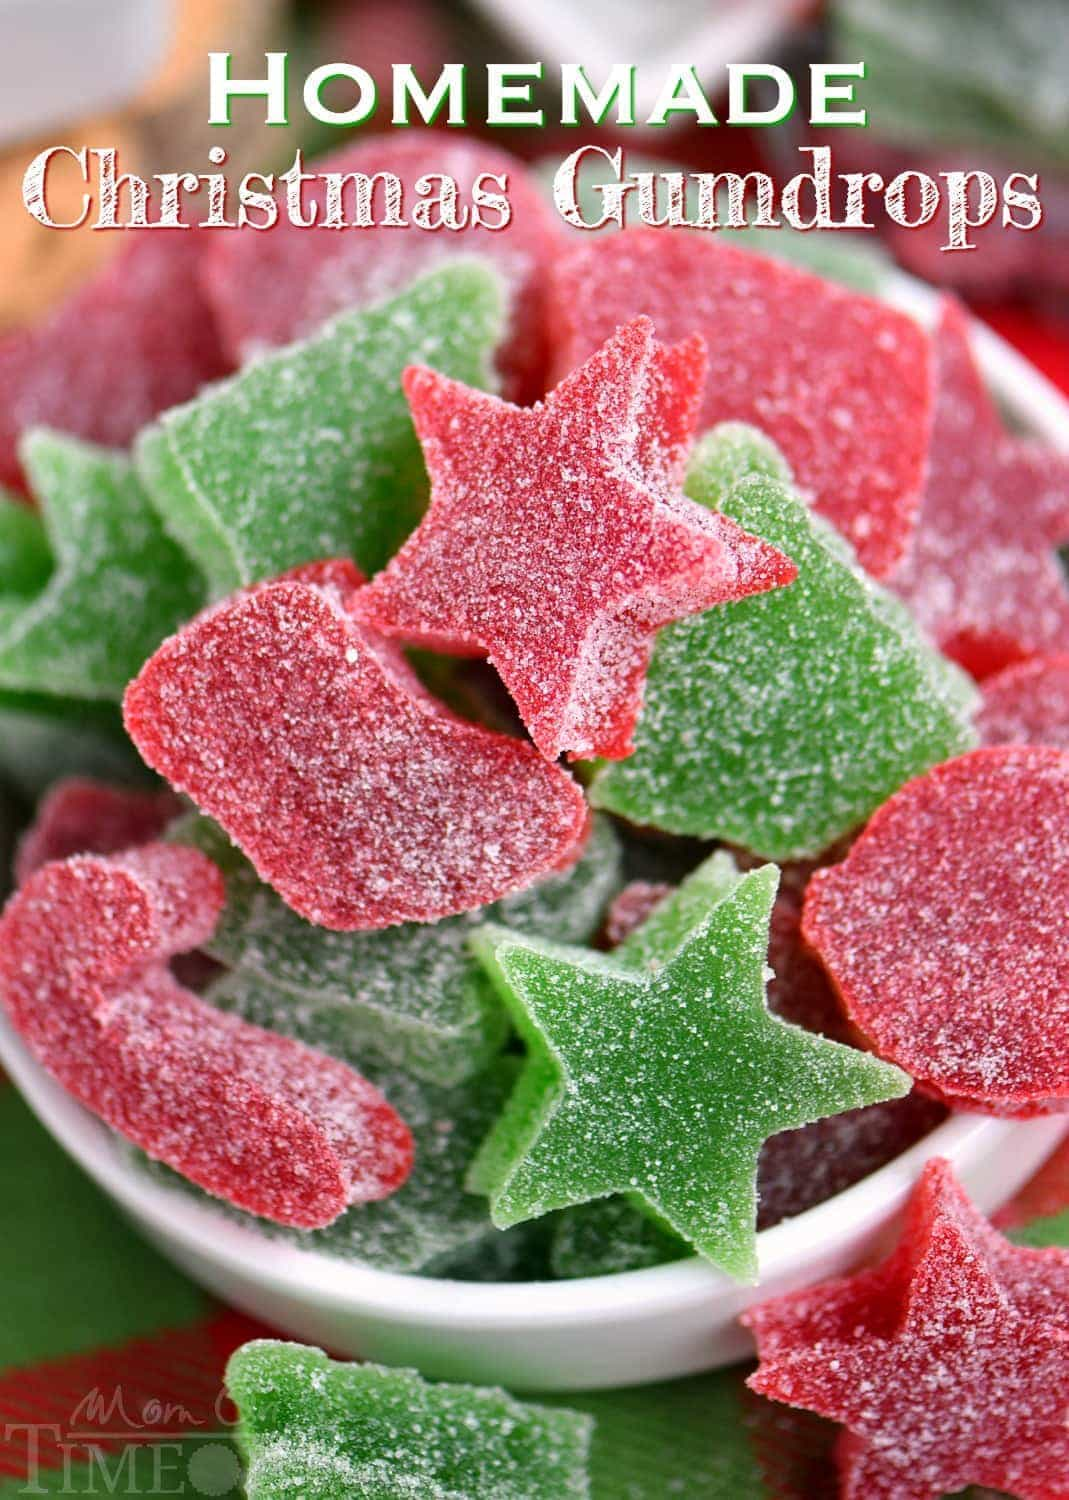 gumdrop-recipe-homemade